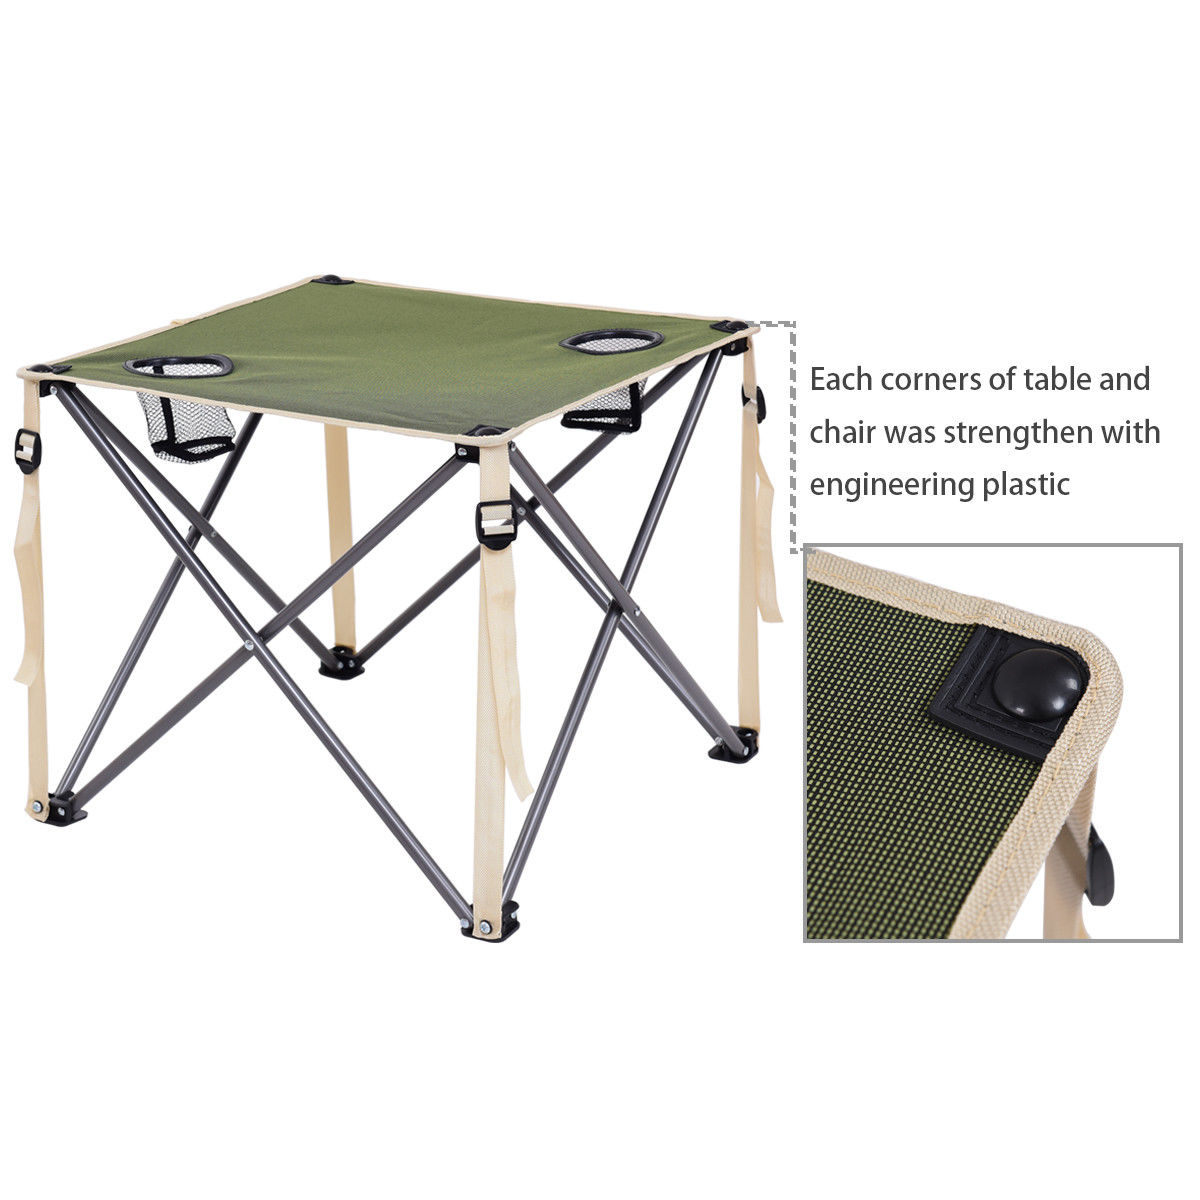 Giantex Portable Outdoor Folding Table Chairs Set Camping Beach Picnic Table  With Carrying Bag Outdoor Furniture Set OP3381GN In Garden Sets From  Furniture ...